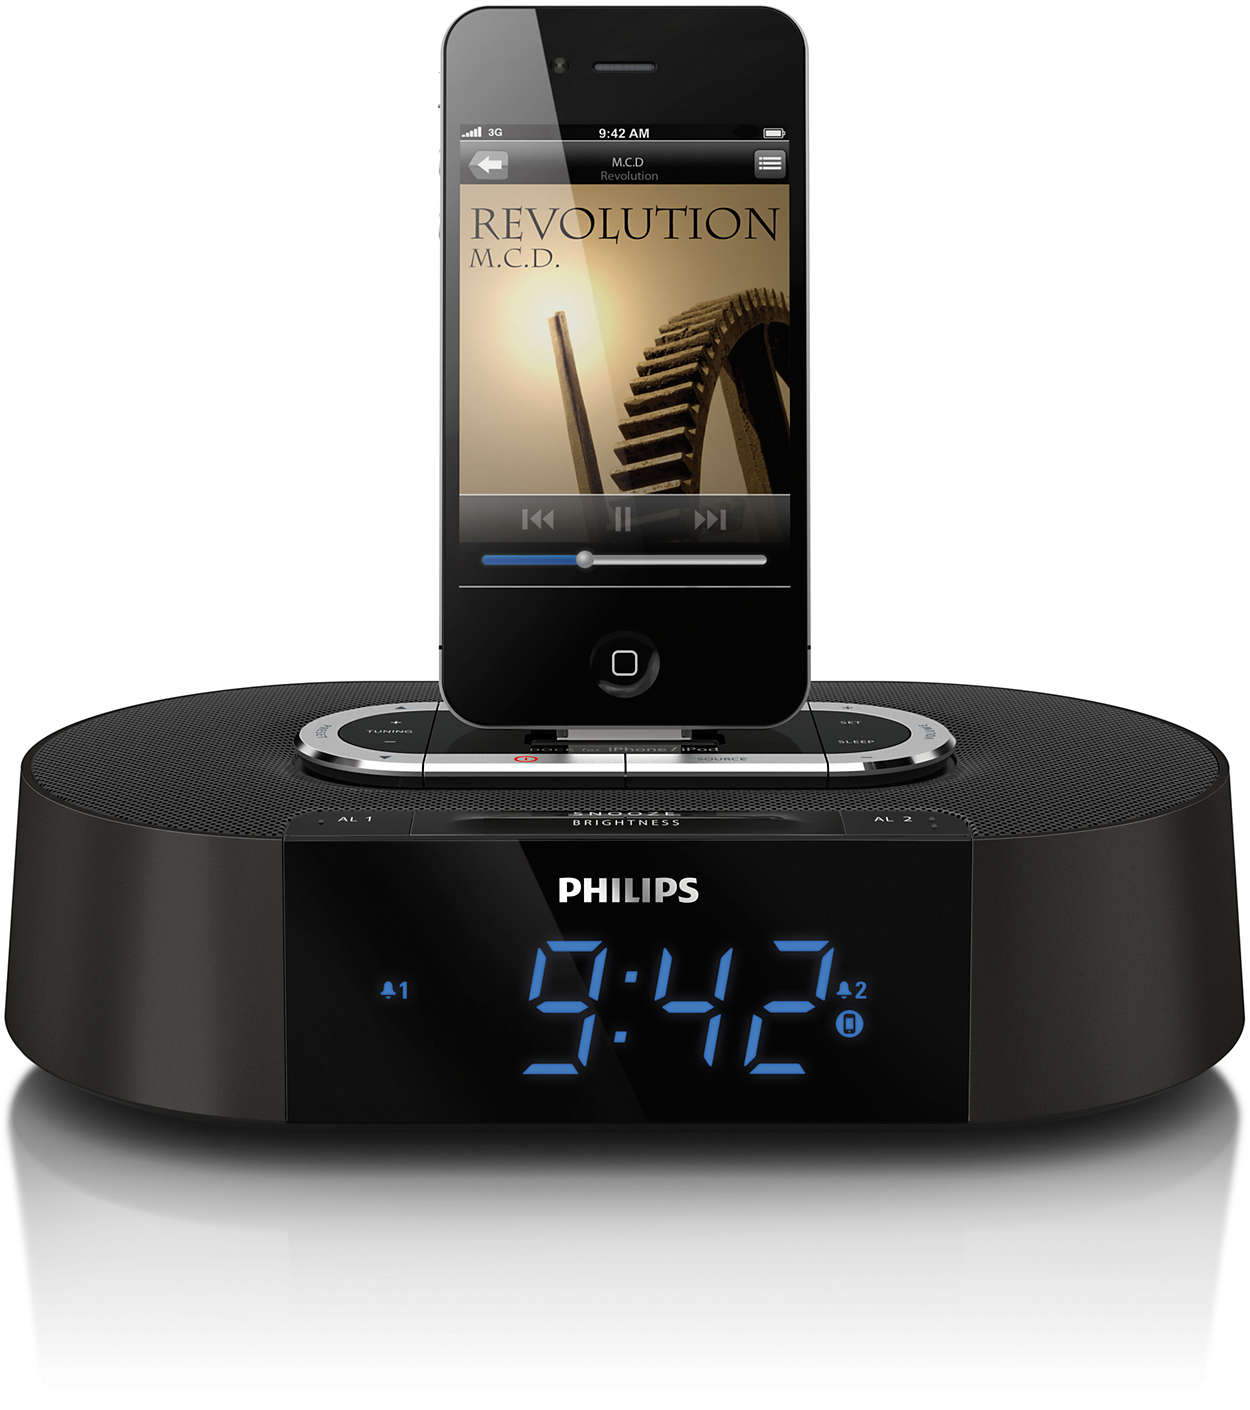 alarm clock radio for ipod iphone aj7030dg 37 philips. Black Bedroom Furniture Sets. Home Design Ideas